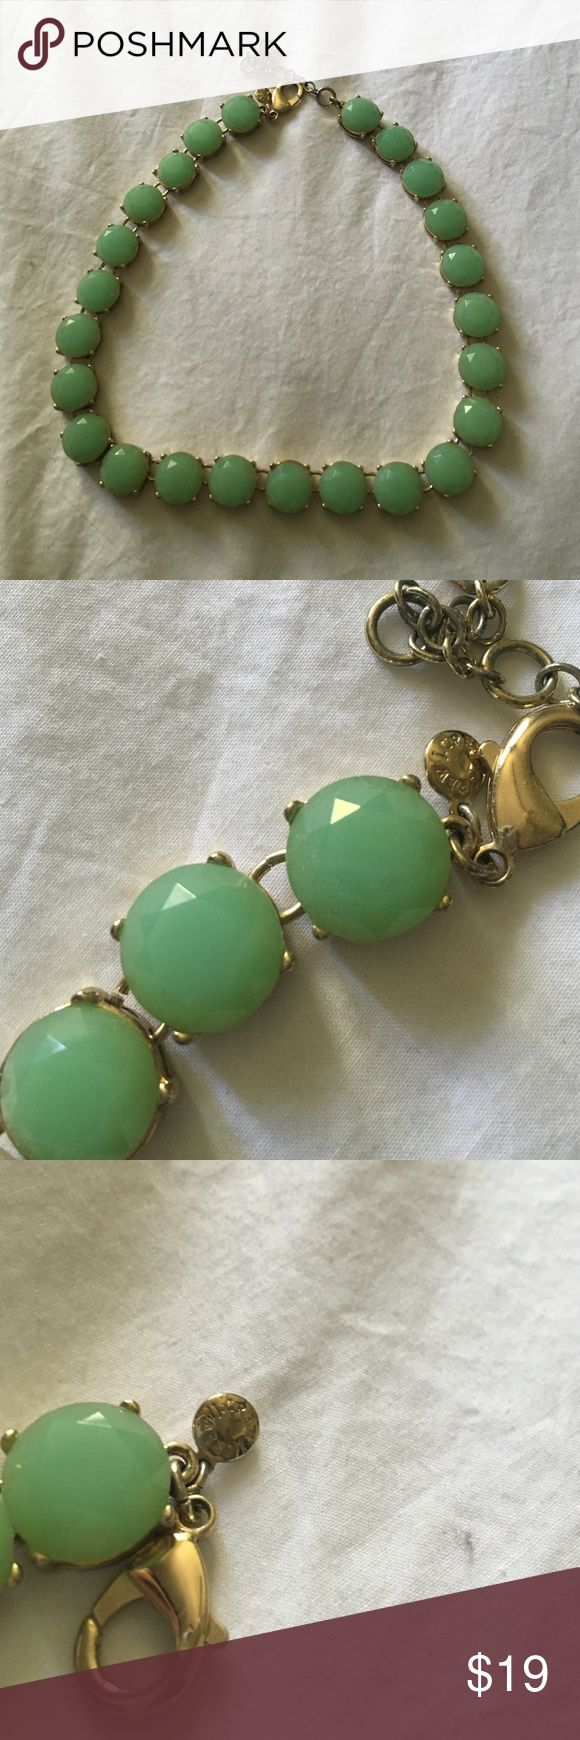 J Crew sea foam green/teal necklace J Crew. Good condition. Not missing any stones! J. Crew Jewelry Necklaces